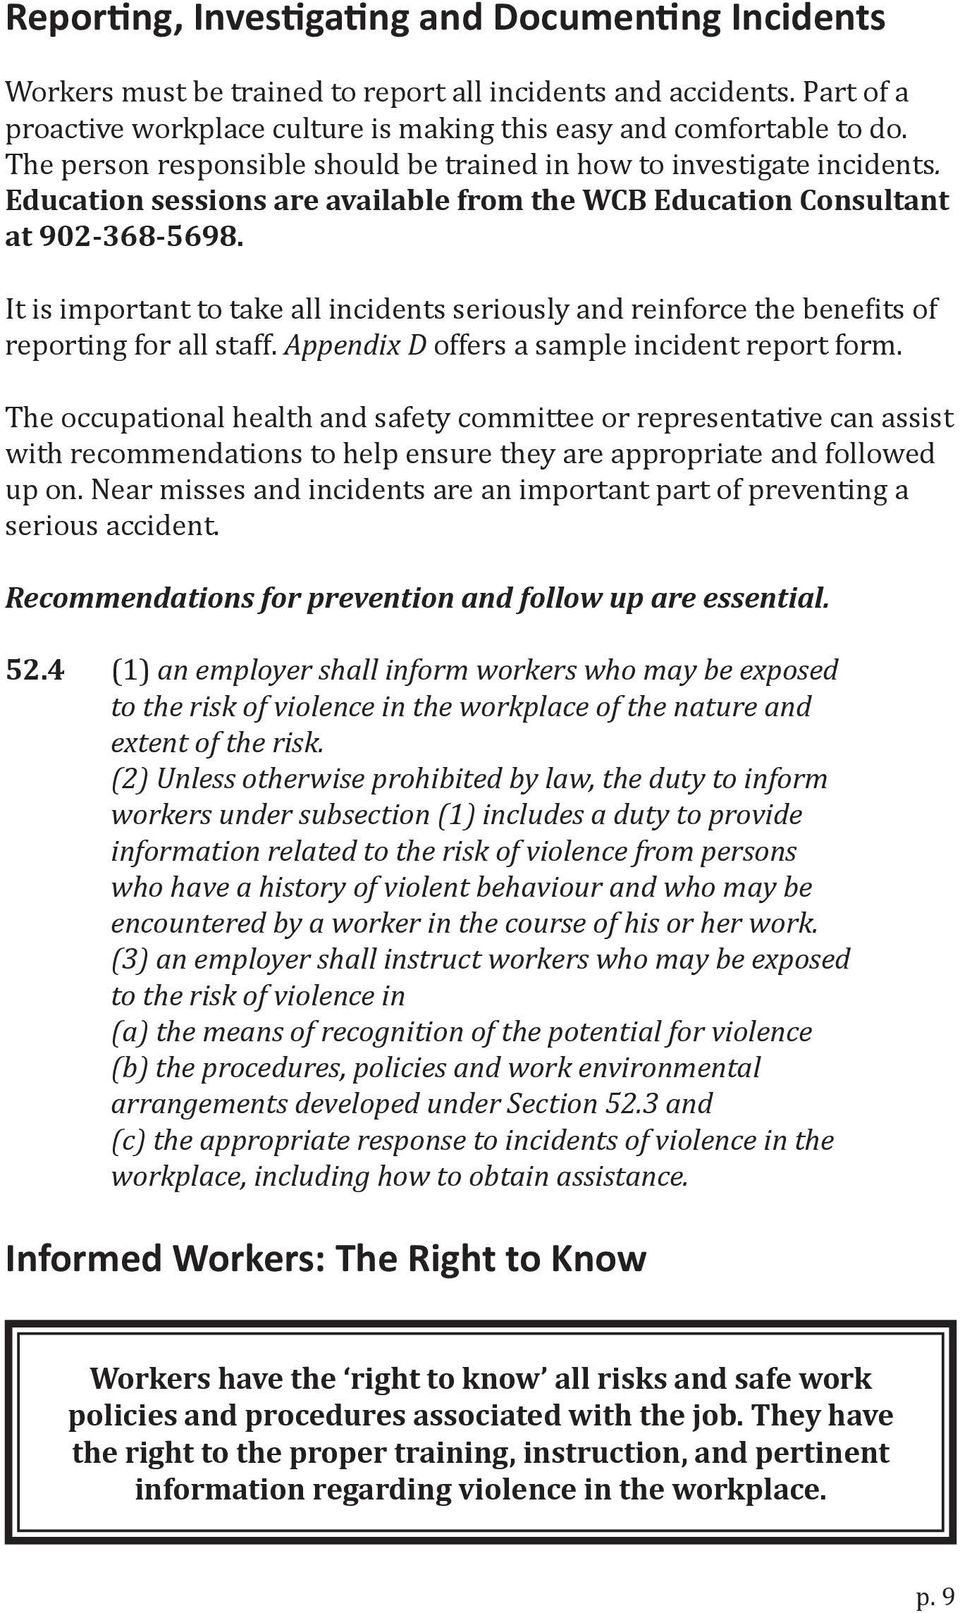 It is important to take all incidents seriously and reinforce the bene its of reporting for all staff. Appendix D offers a sample incident report form.